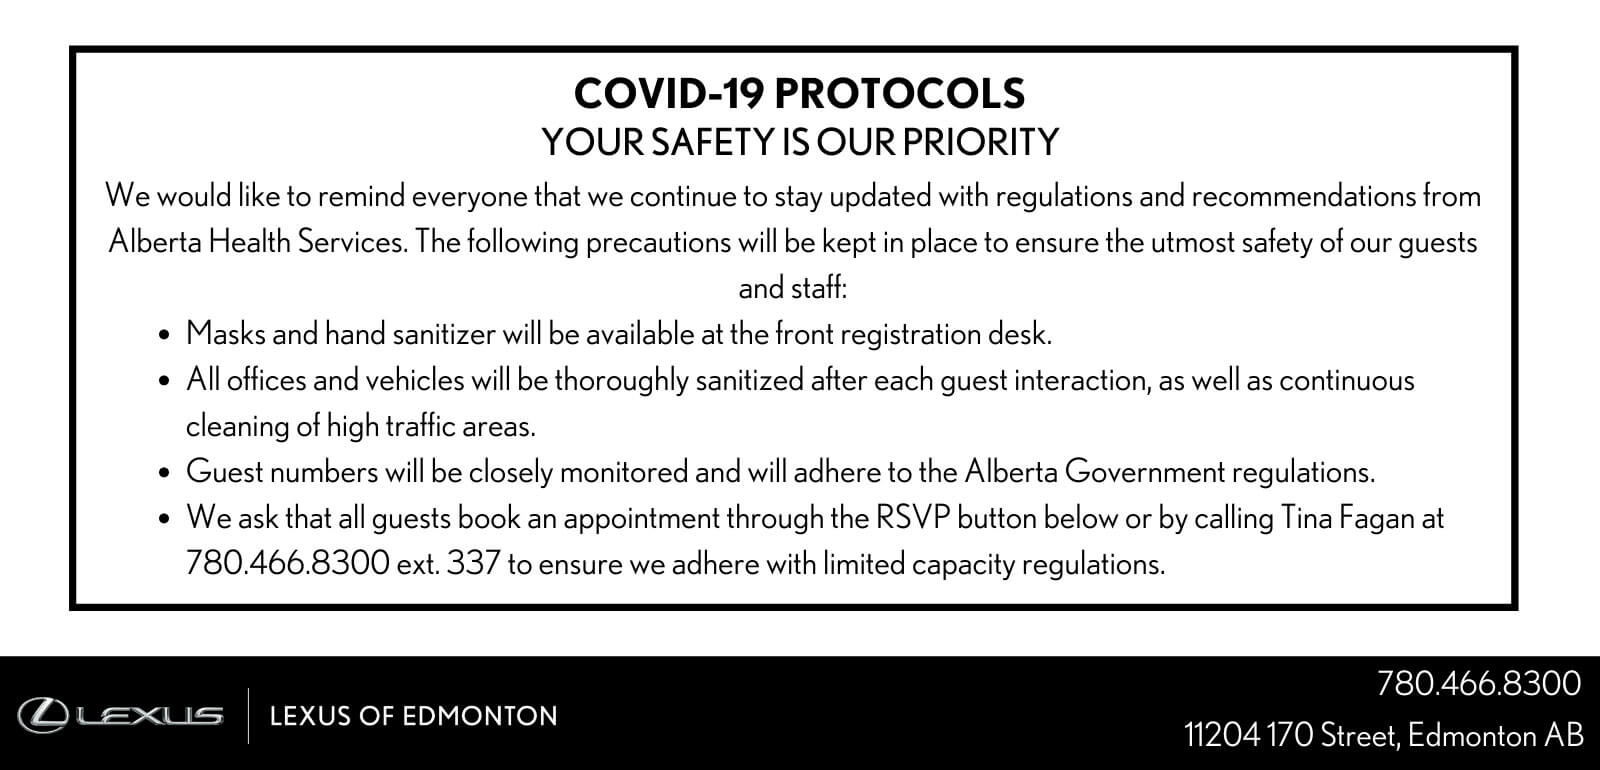 COVID-19 PROTOCOLS - YOUR SAFETY IS OUR PRIORITY